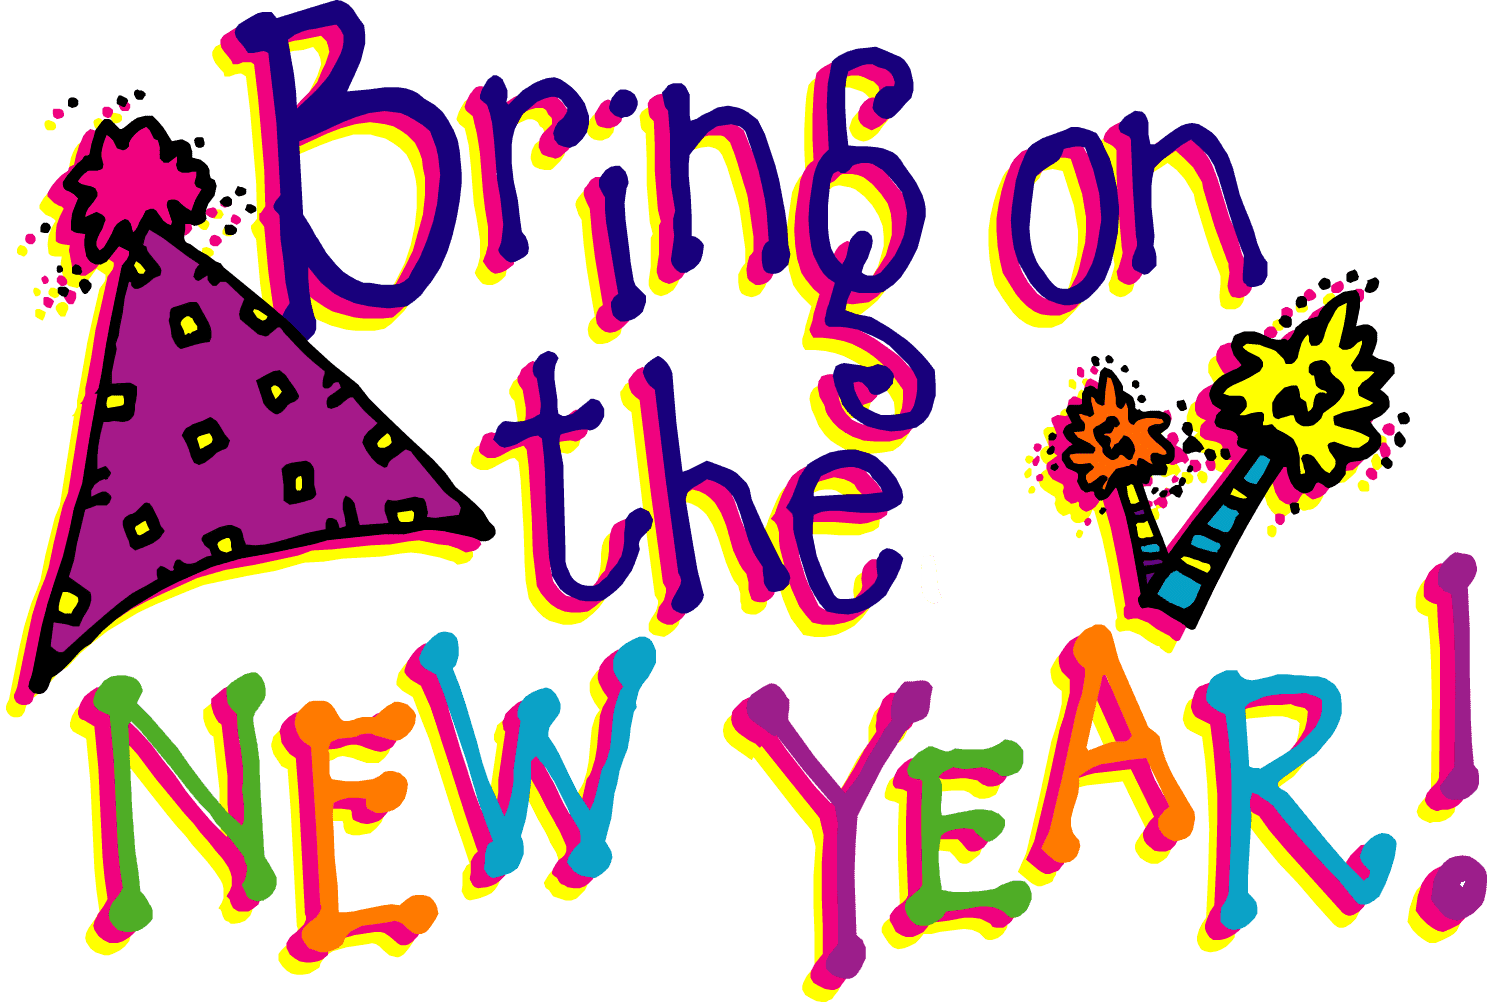 Best clipartion com . Free new year s day 2018 clipart